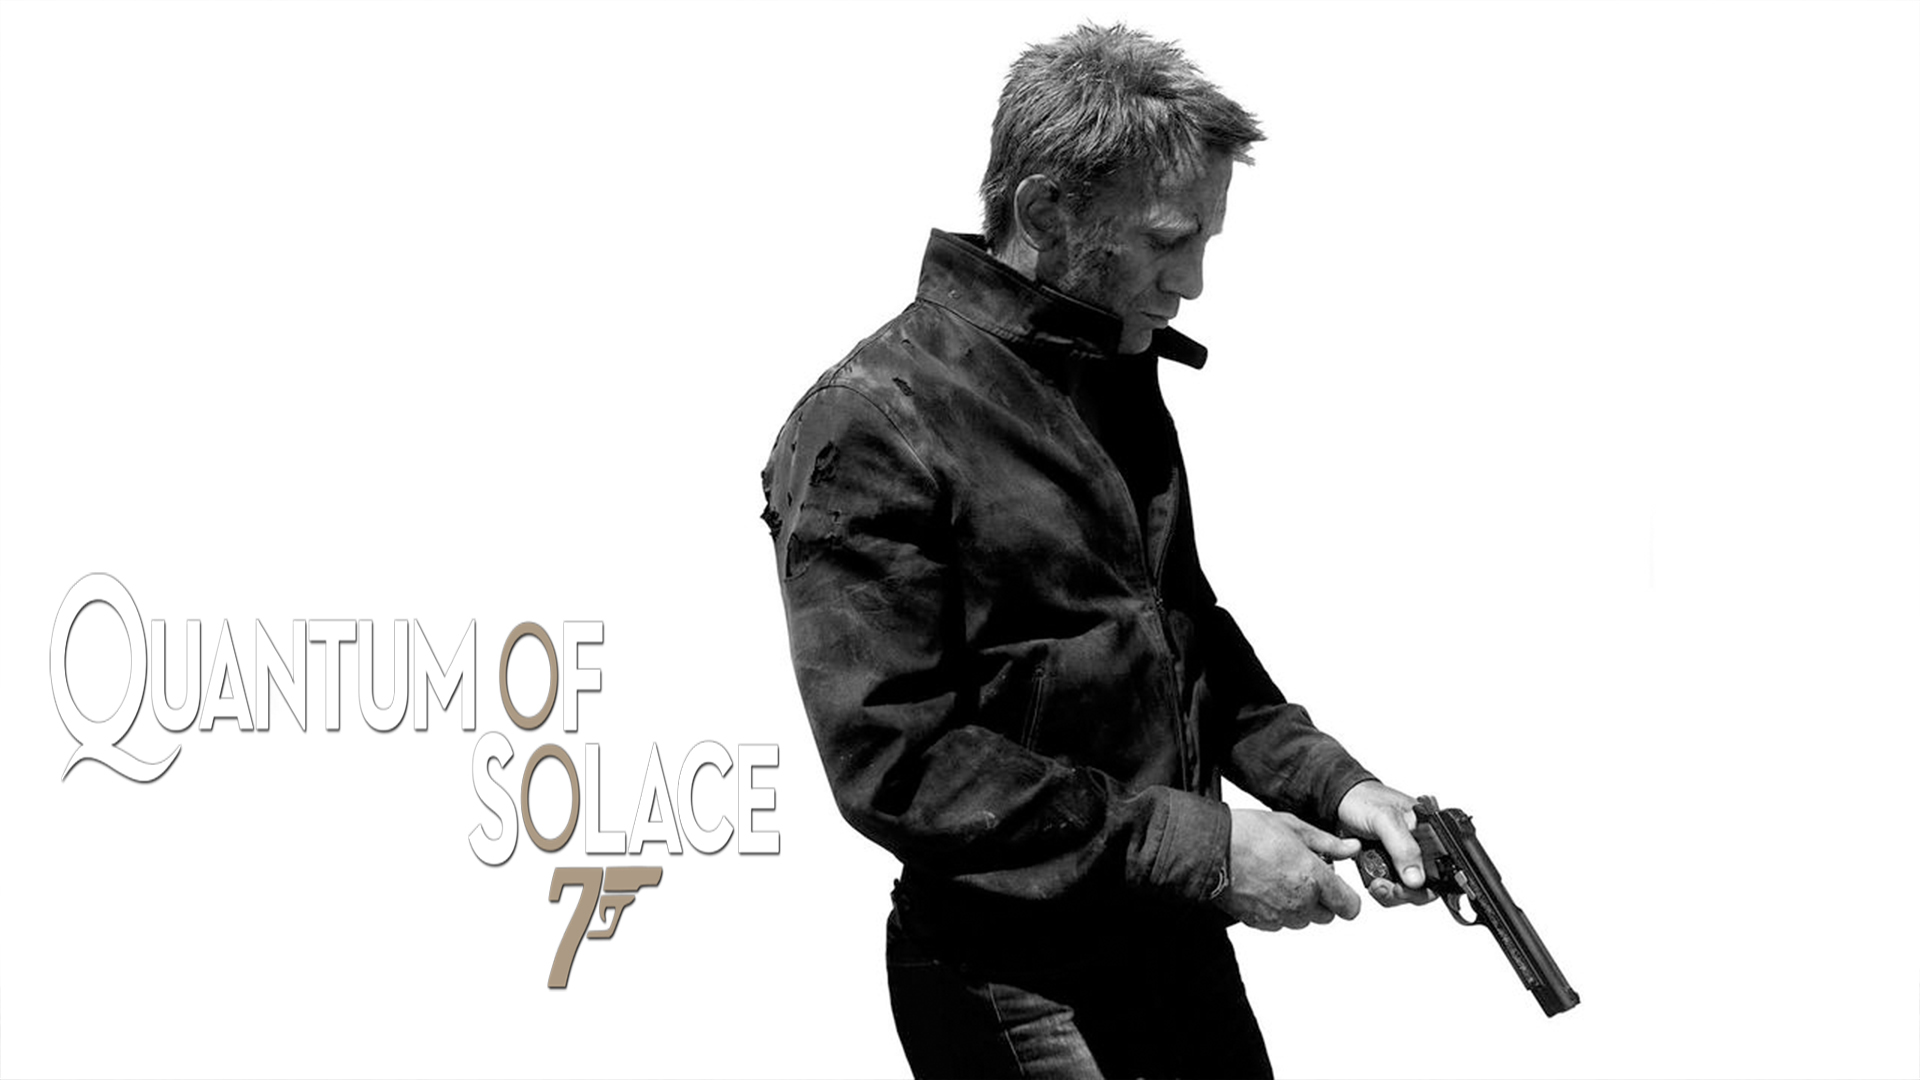 James Bond 007 Quantum of Solace HD Wallpaper Background Image 1920x1080